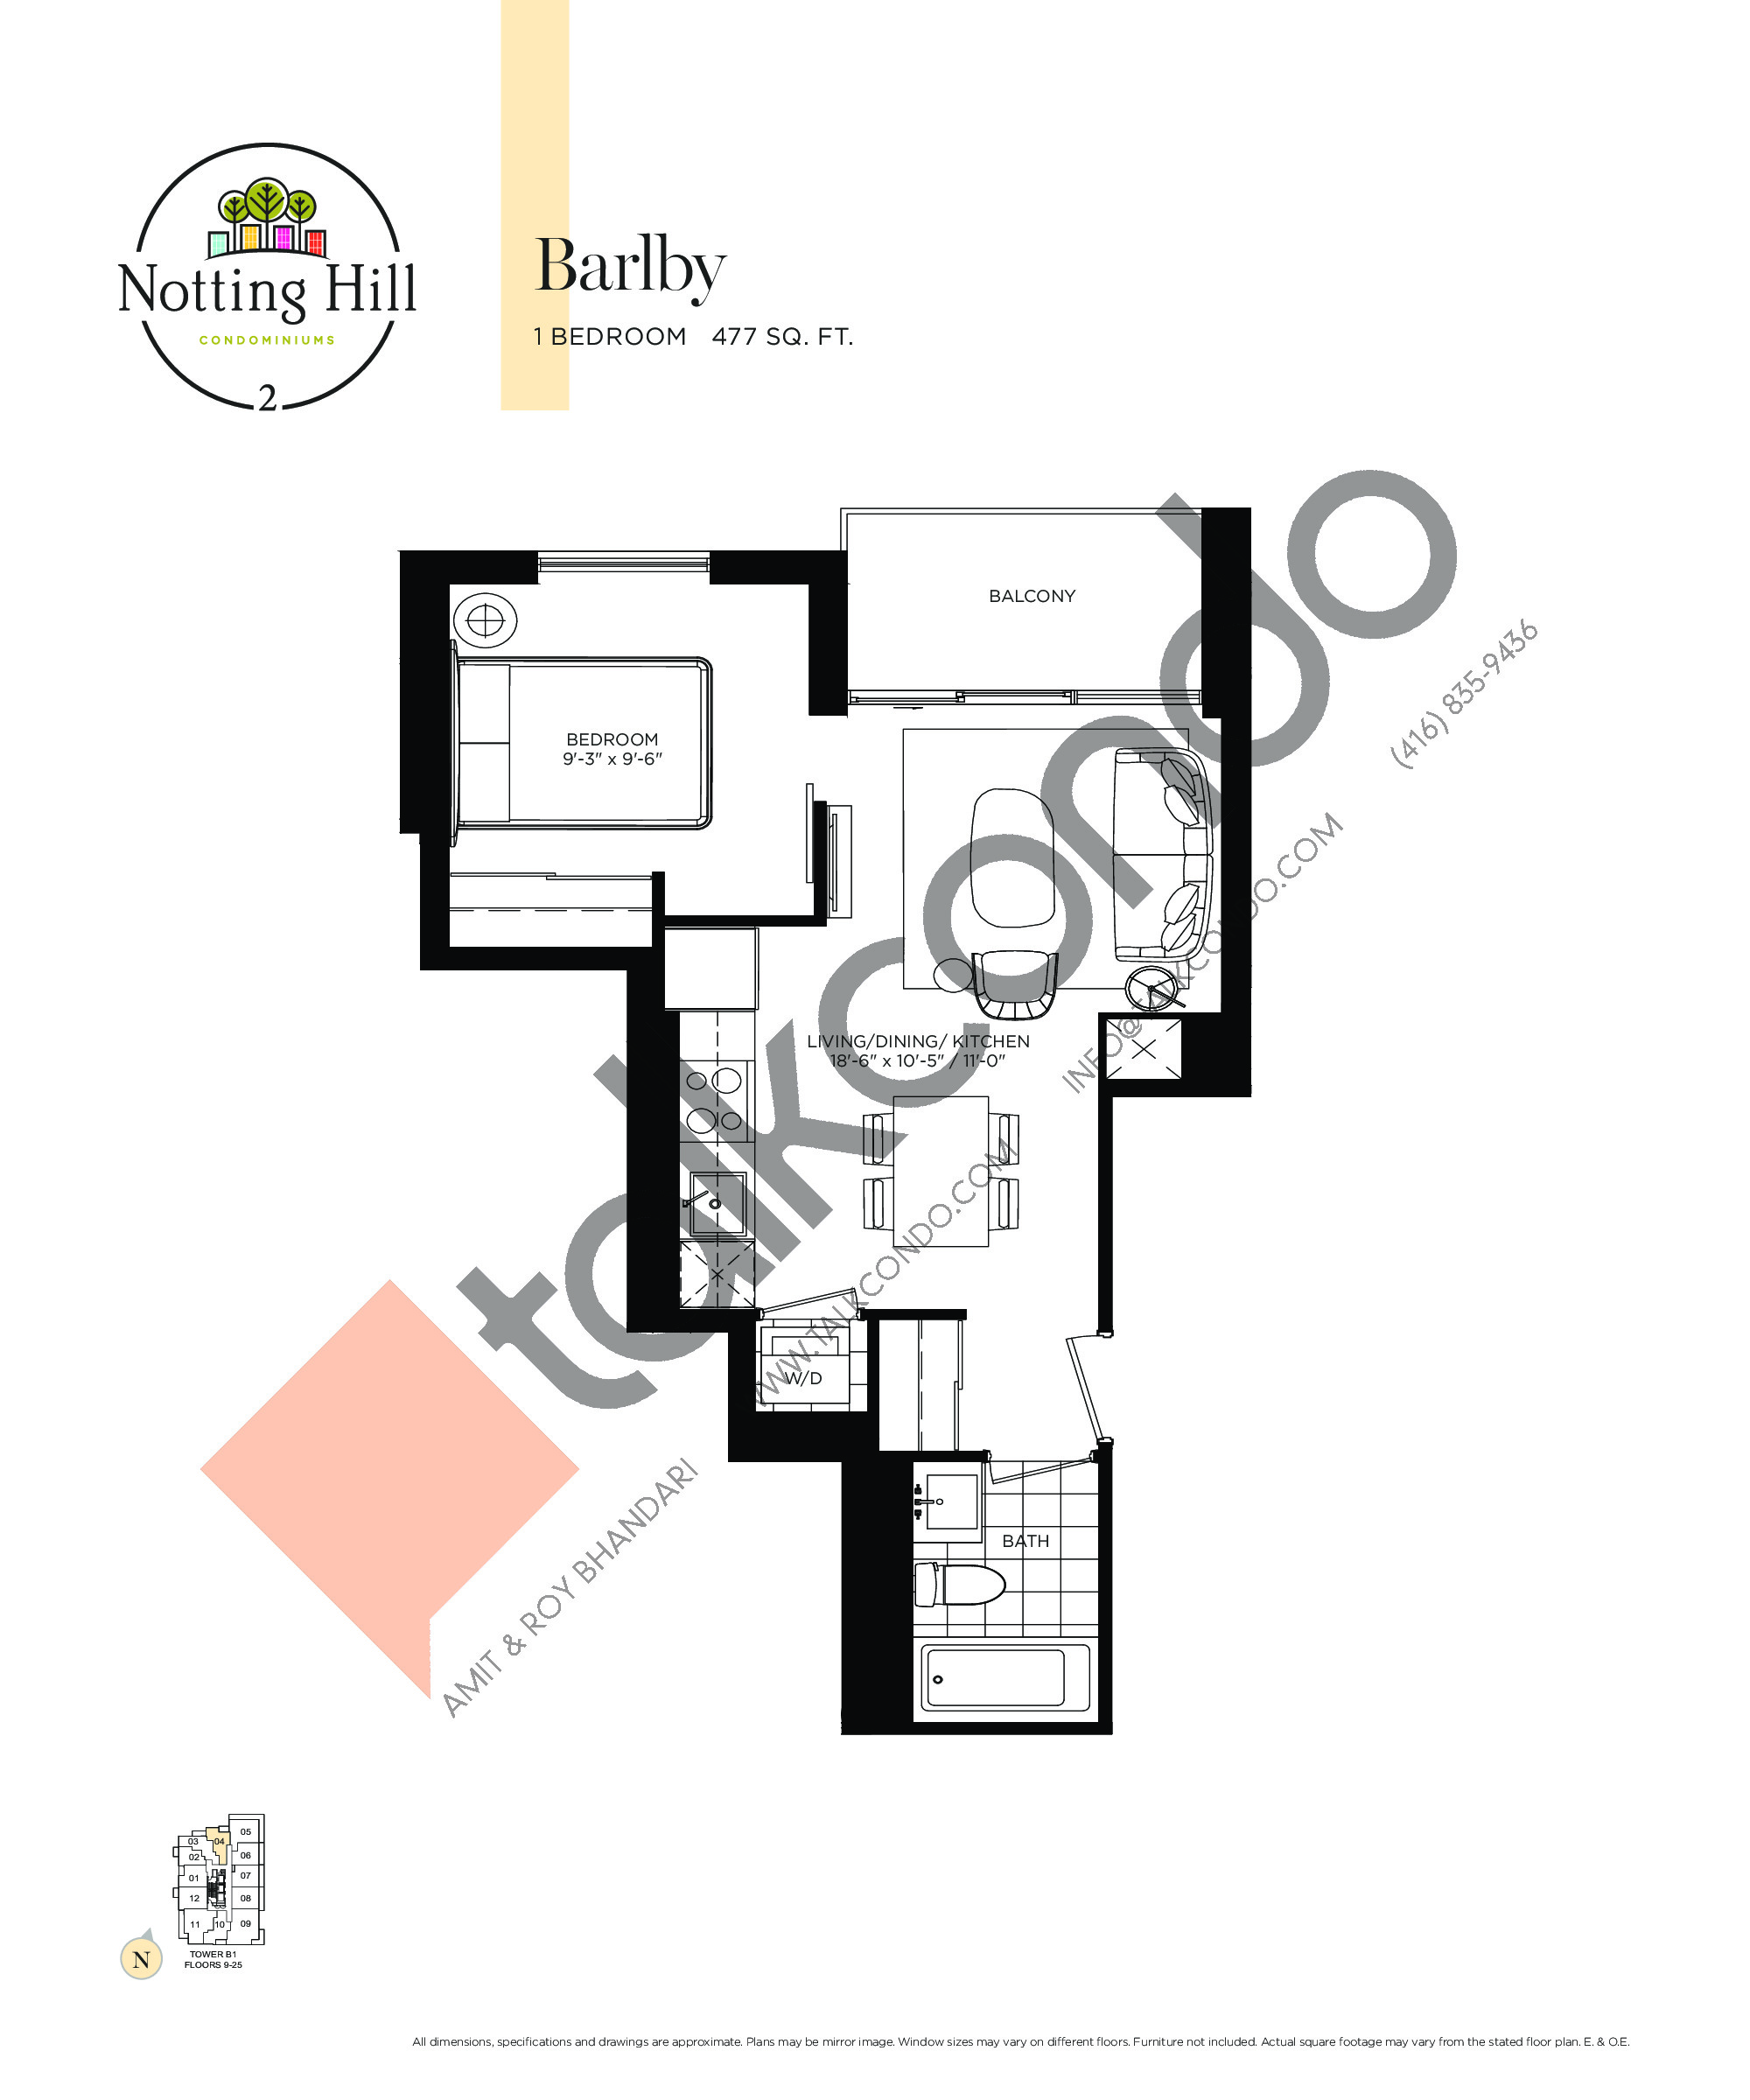 Barlby Floor Plan at Notting Hill Phase 3 Condos - 477 sq.ft